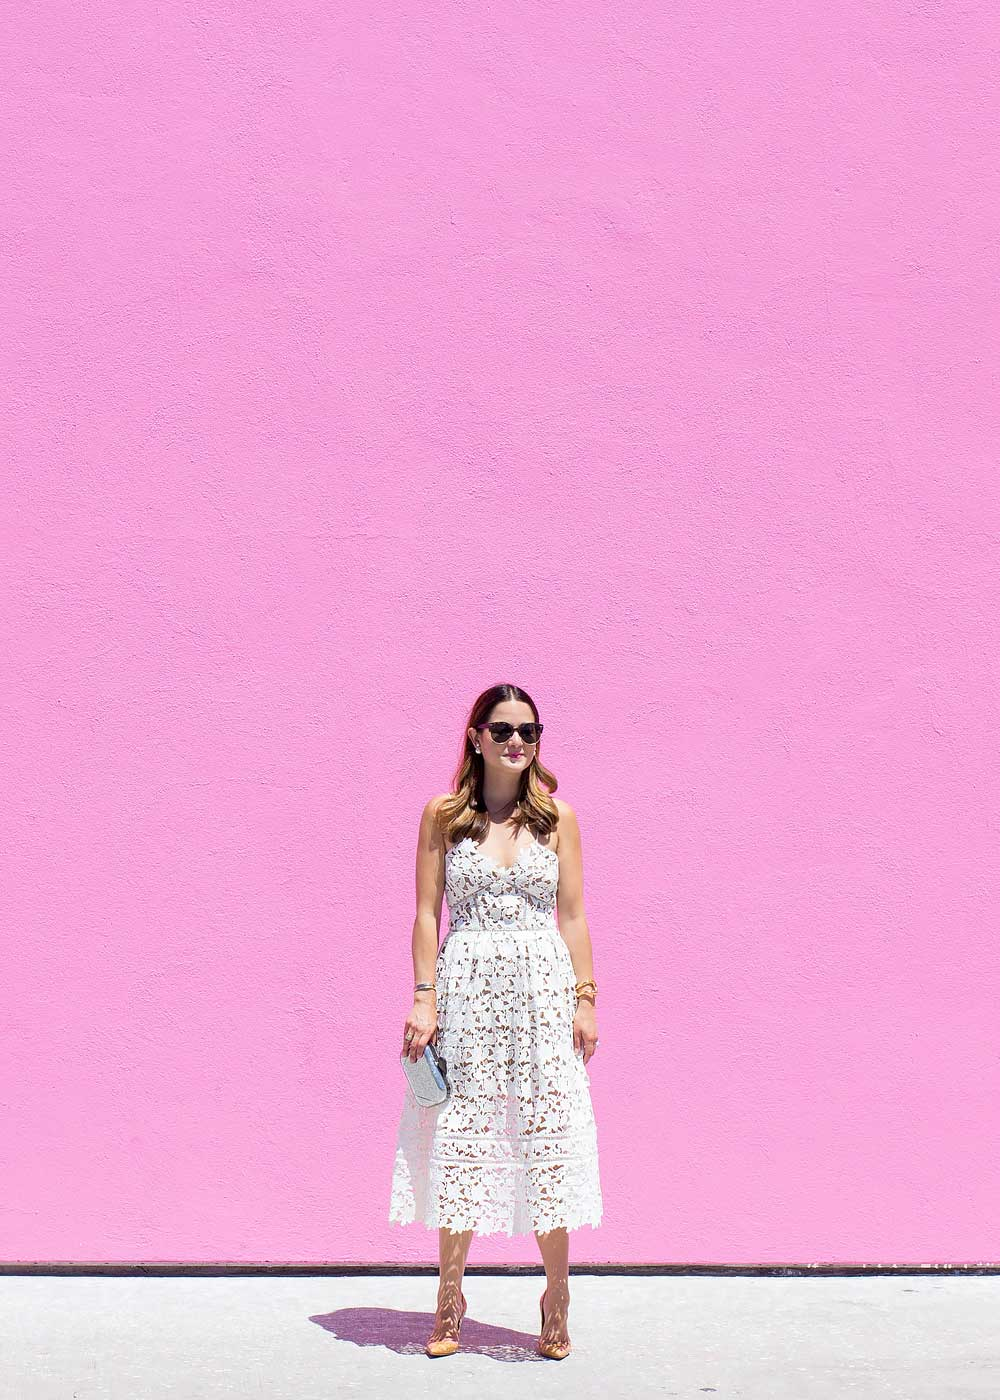 Los Angeles Pink Wall